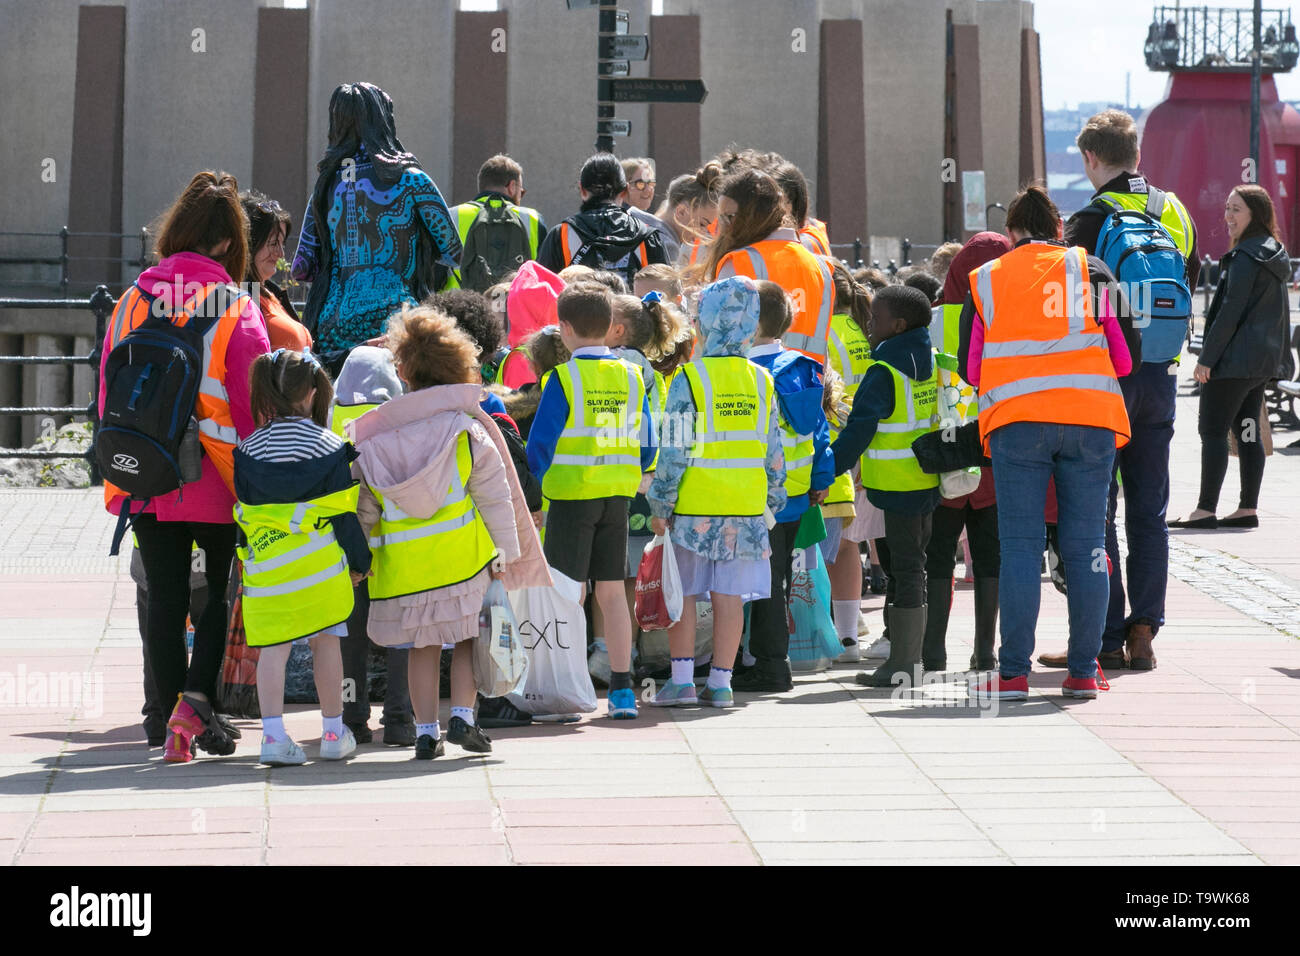 New Brighton, Wallasey. 21st May, 2019. UK Weather: Bright and sunny on the wirral riverside as pre-school children enjoy an escorted walk on the seafront promenade. Each child wearing a hi-vis tabard printed 'Slow down for Bobby' Twenty's Plenty; The Bobby Colleran Trust is Road Safety Charity offering advice and guidance for Parents and Schools. Since Bobby's accident, his family have campaigned for safer roads outside all schools. Credit; MediaWorldImages/AlamyLiveNews. - Stock Image